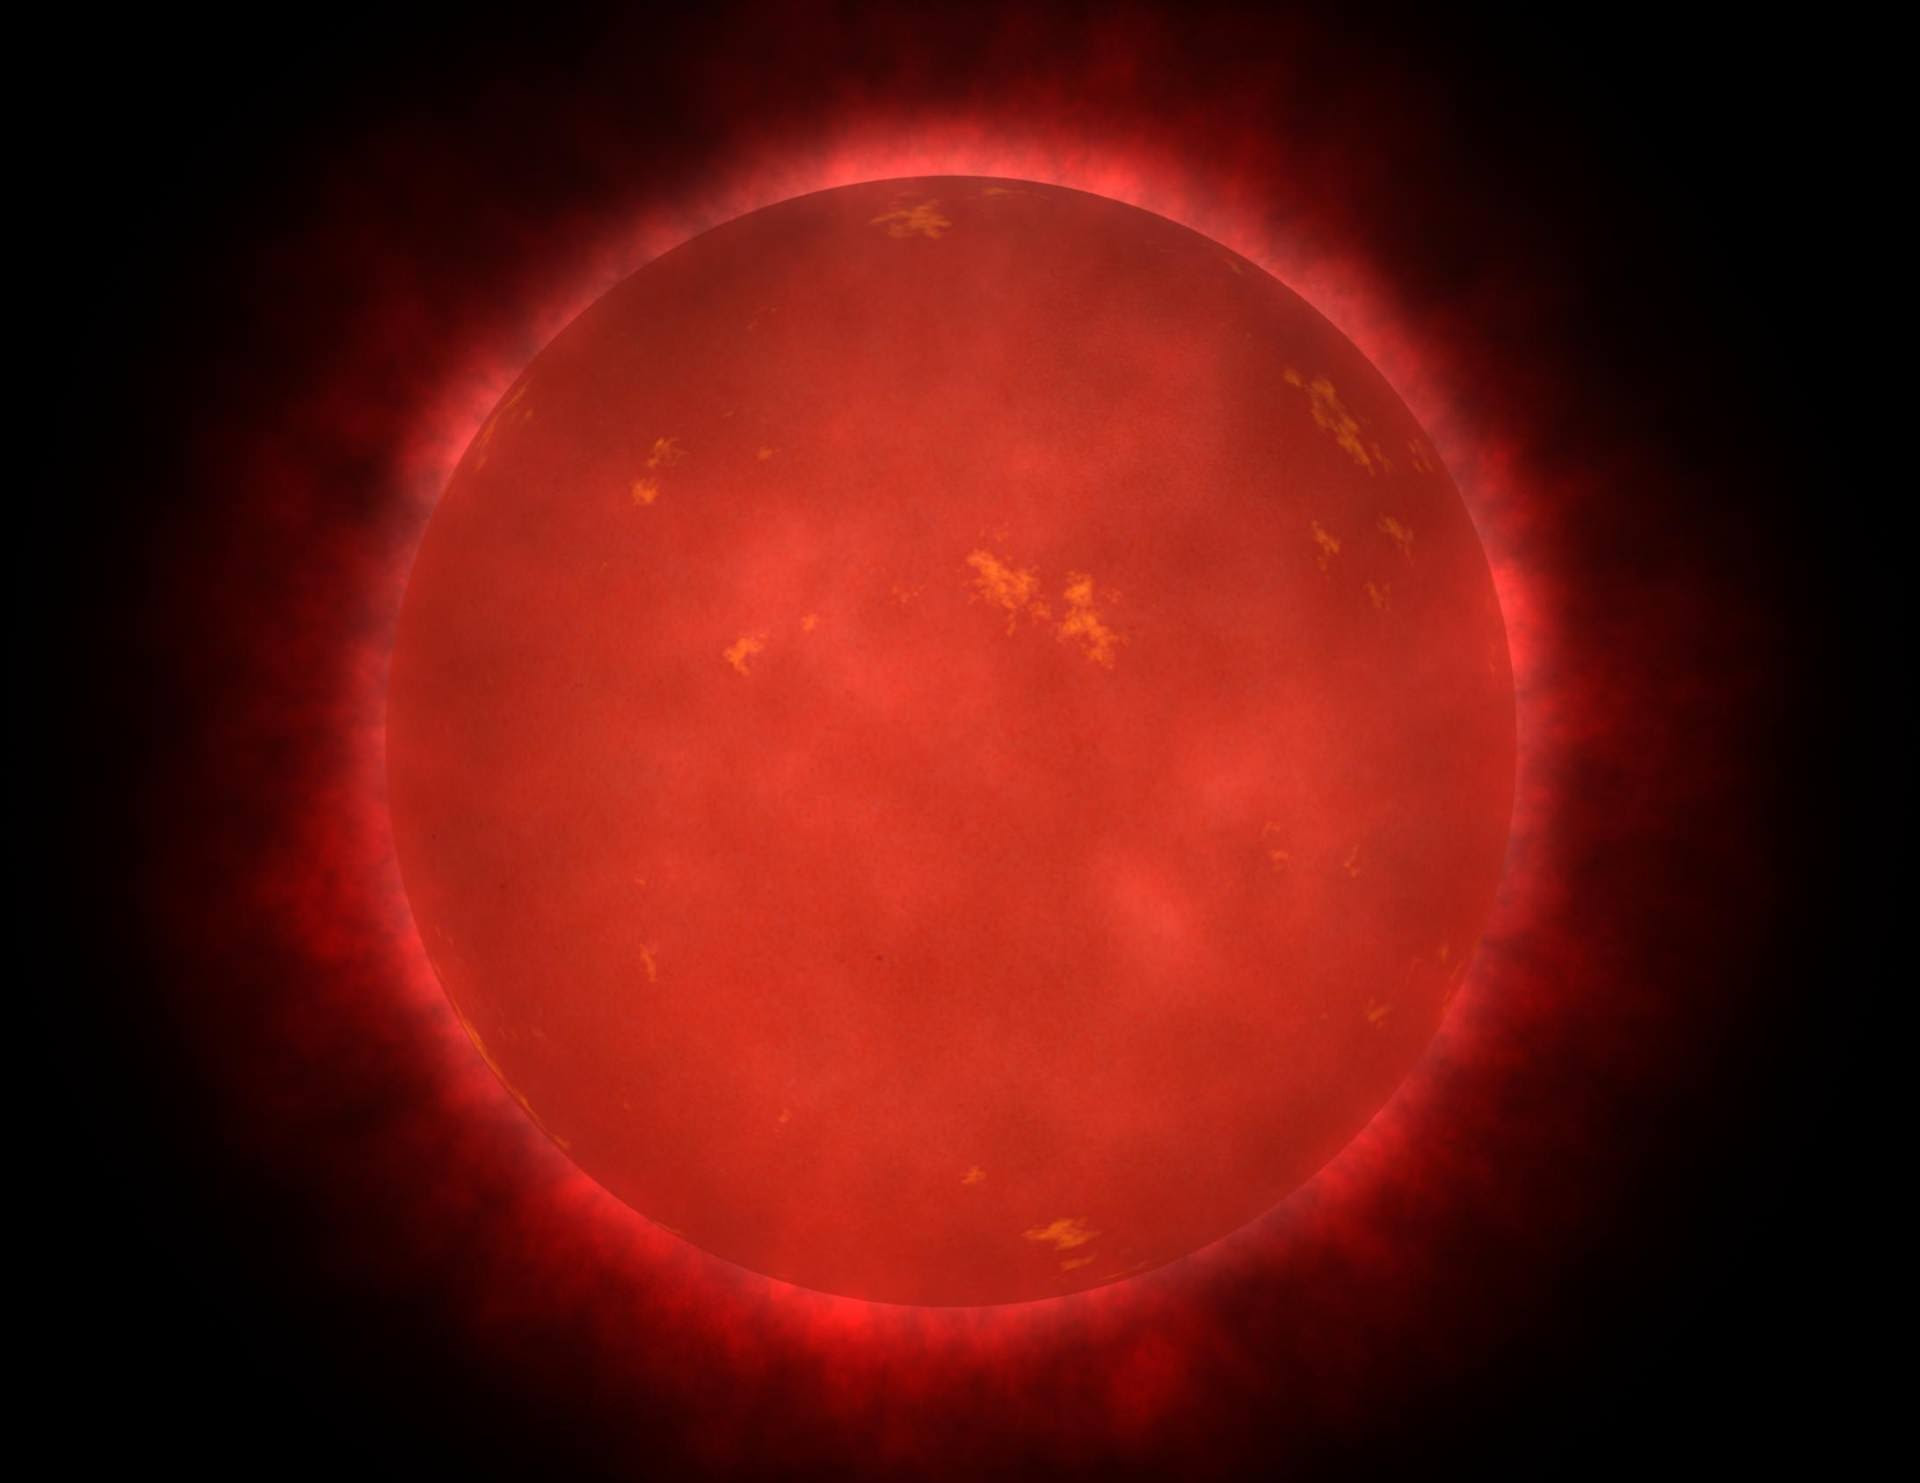 Artist's impression of a red giant star. Credit:NASA/ Walt Feimer